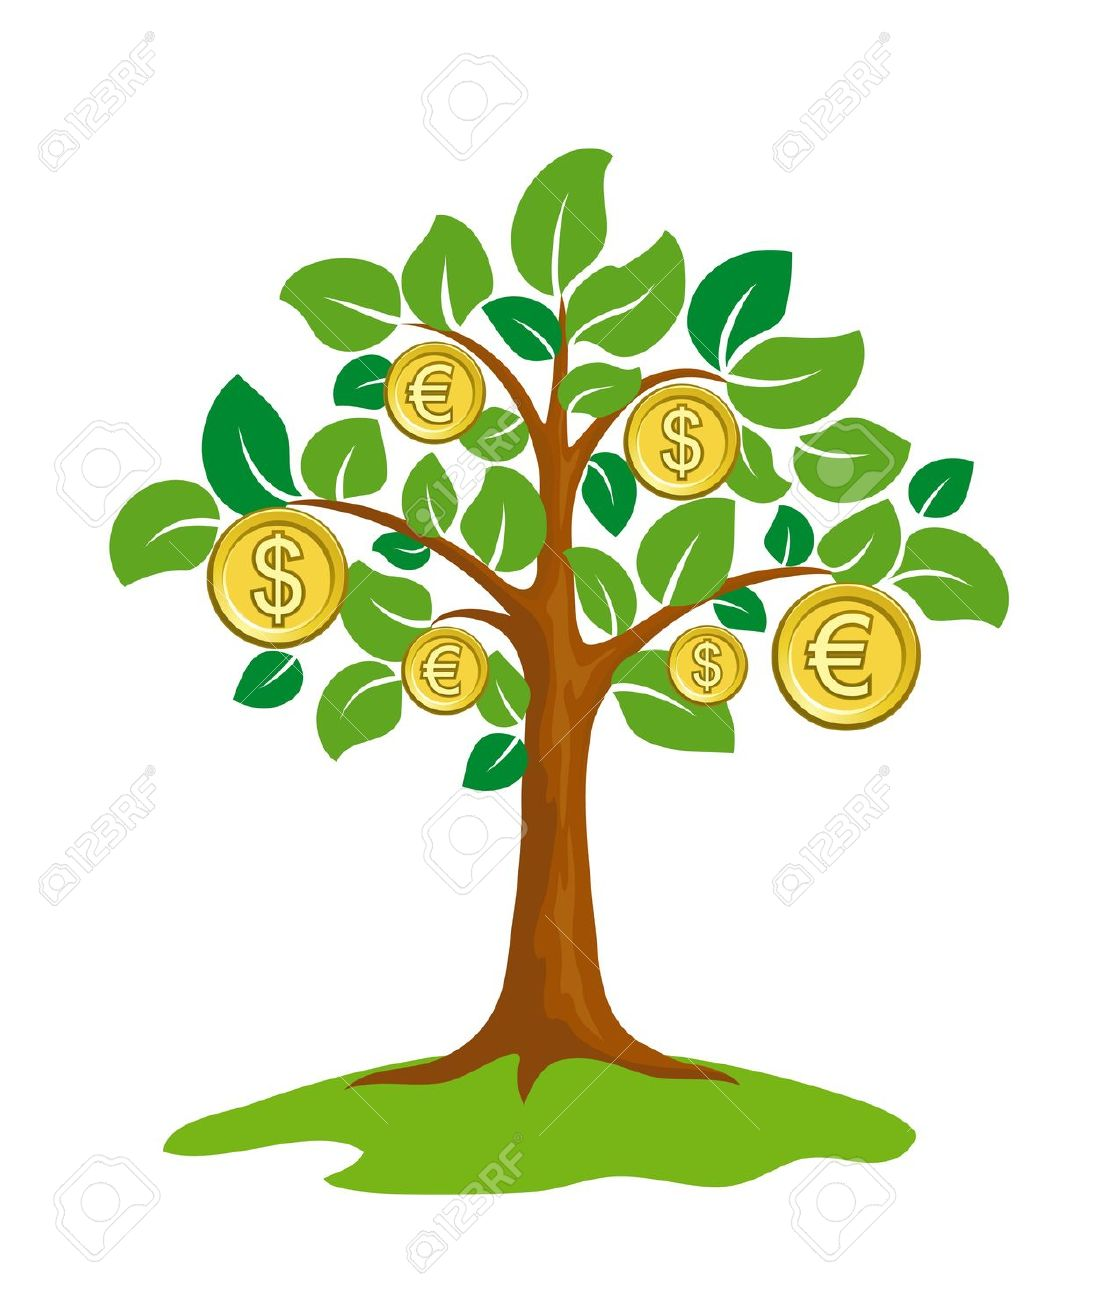 Money Tree With Coins. Royalty Free Cliparts, Vectors, And Stock.